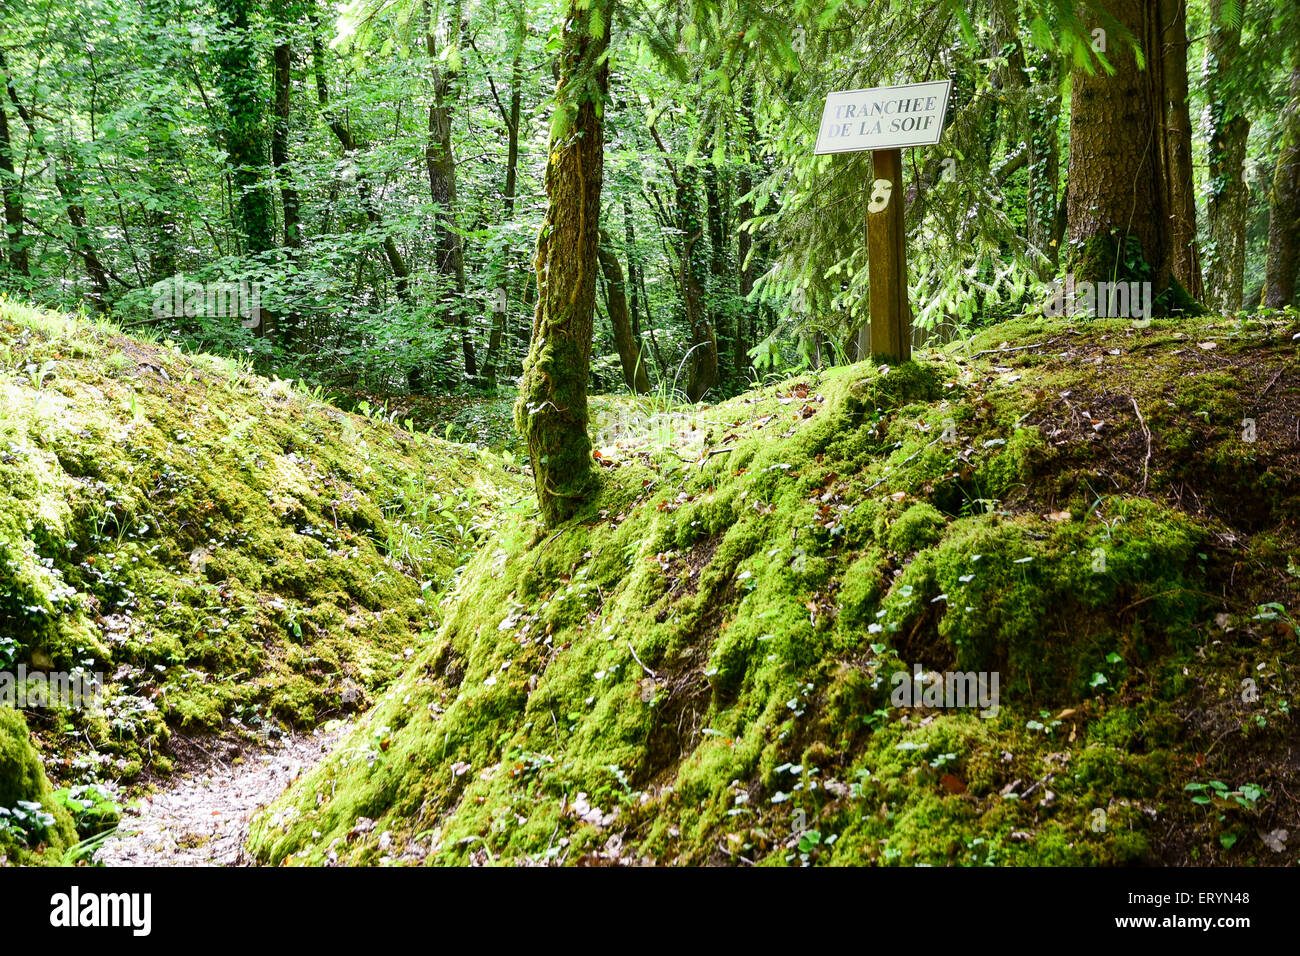 German First World War trench called 'Trench of Thirst' by the French, St Mihiel salient, Lorraine, France - Stock Image